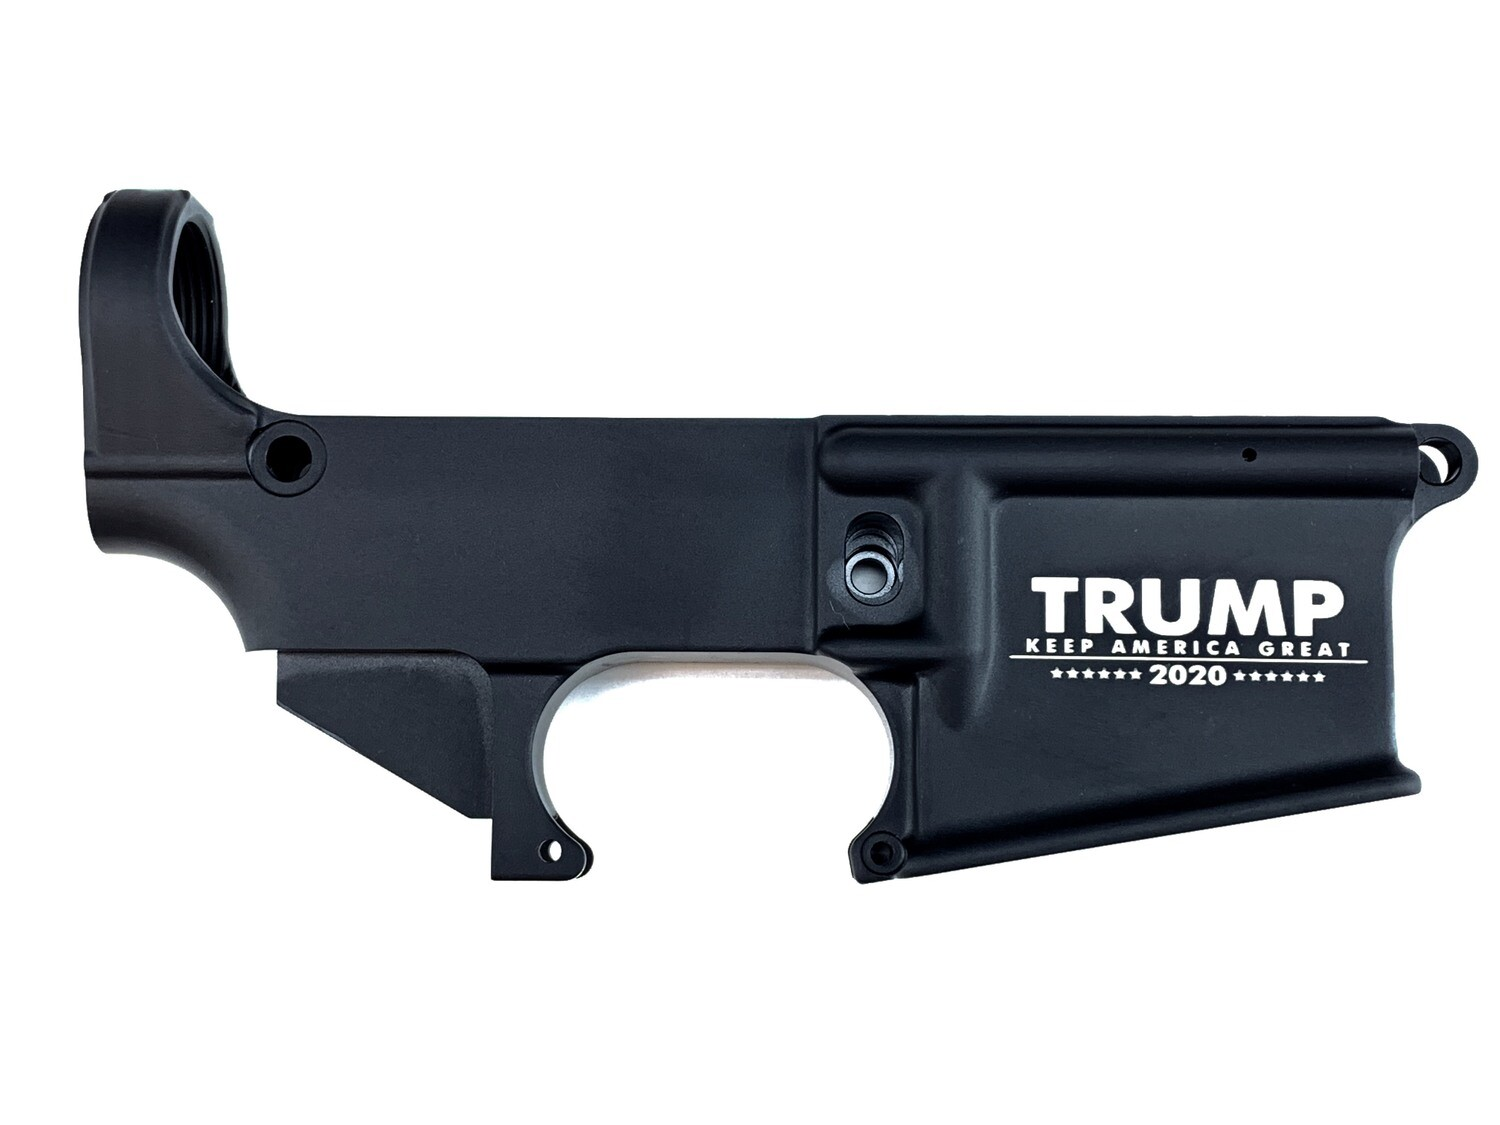 """AR-15 80% """"Trump 2020 Keep America Great"""" Lower Receiver - Black Anodized Forged 5.56/.223"""